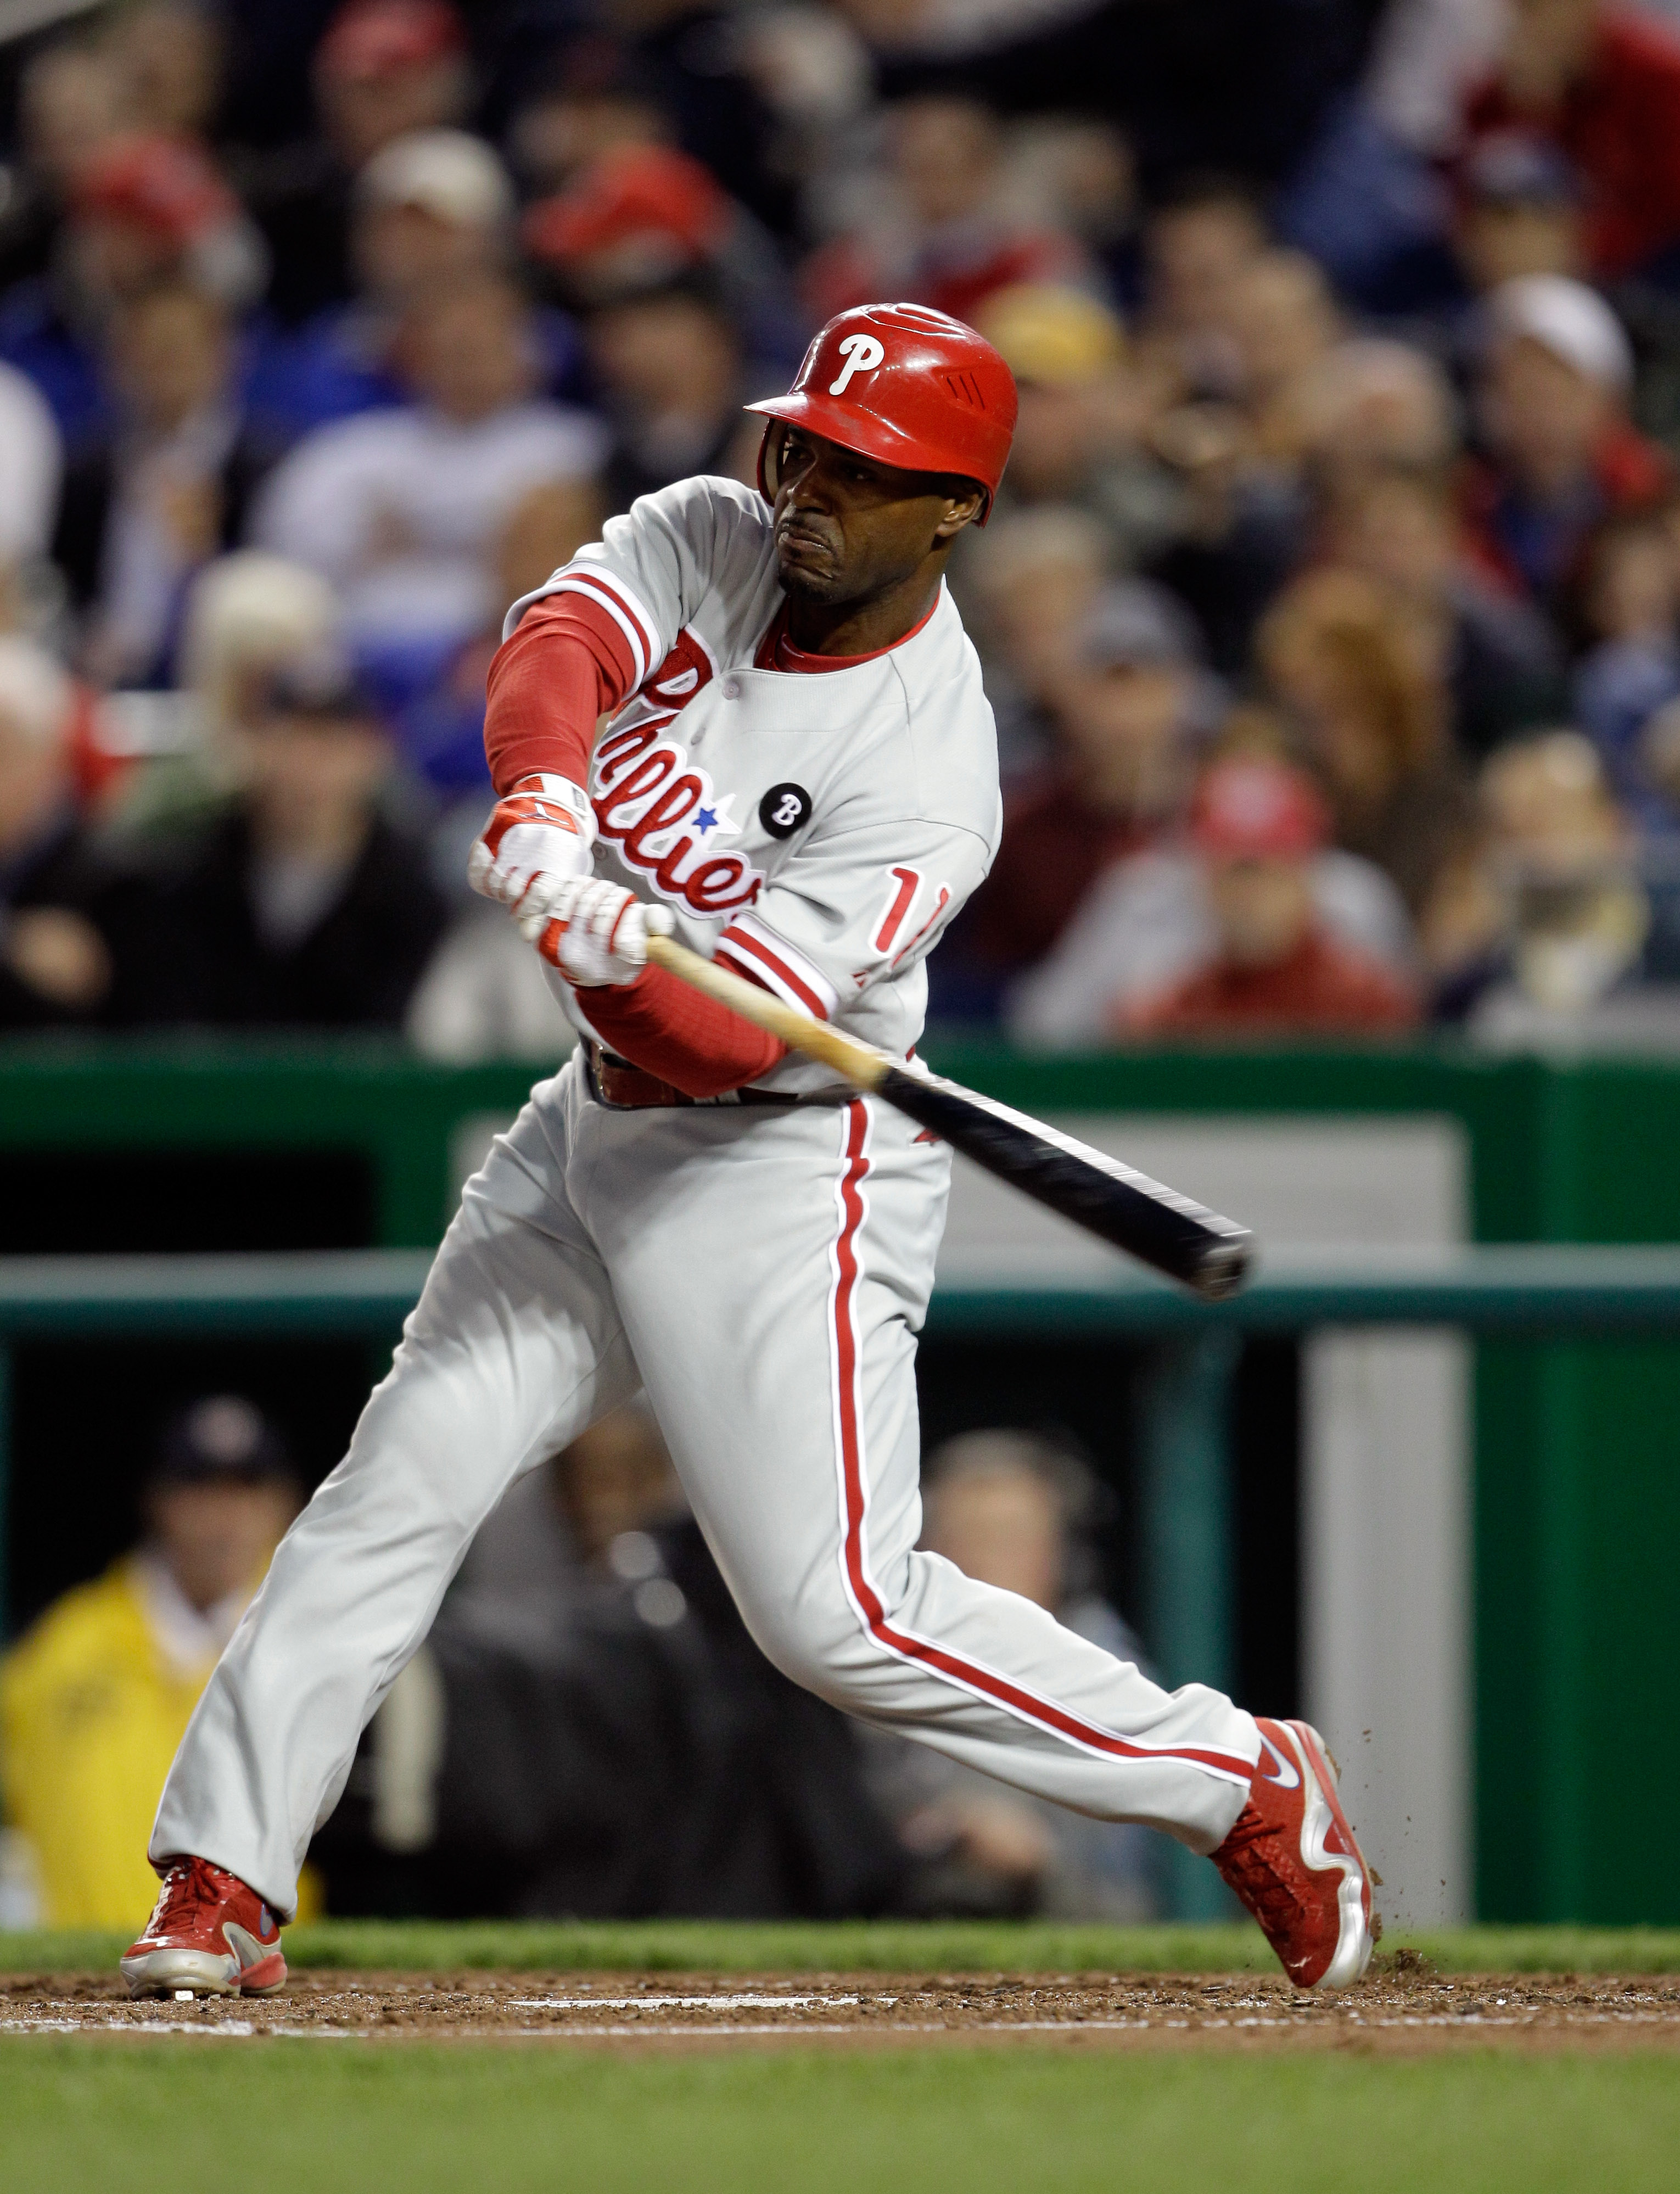 WASHINGTON, DC - APRIL 12: Jimmy Rollins #11 of the Philadelphia Phillies at the plate against the Washington Nationals at Nationals Park on April 12, 2011 in Washington, DC. (Photo by Rob Carr/Getty Images)